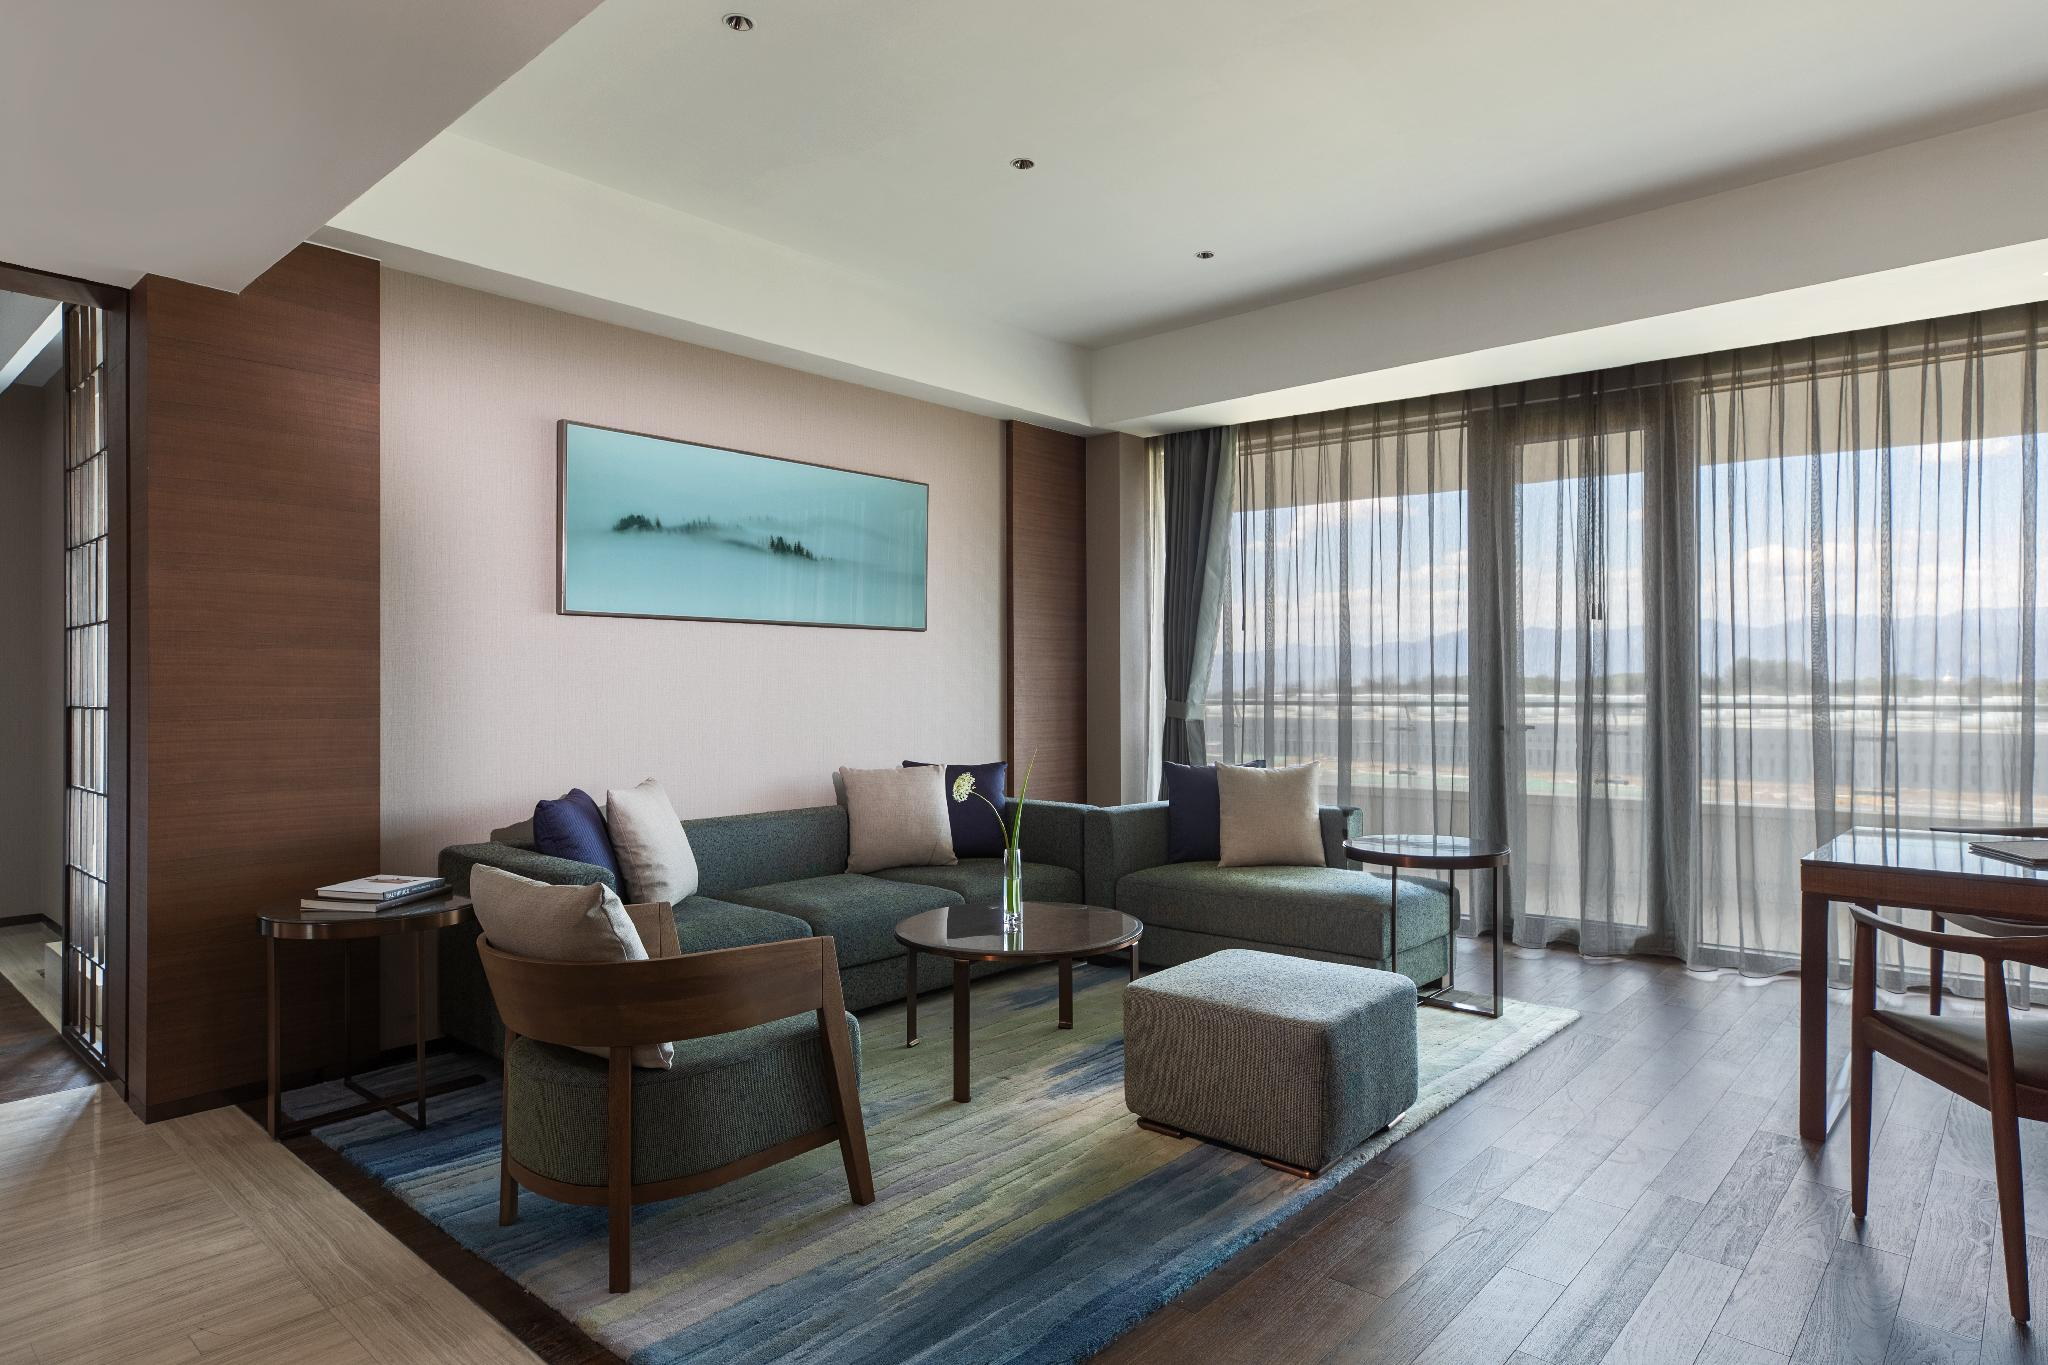 Family Suite, Executive lounge access, 1 Bedroom Suite